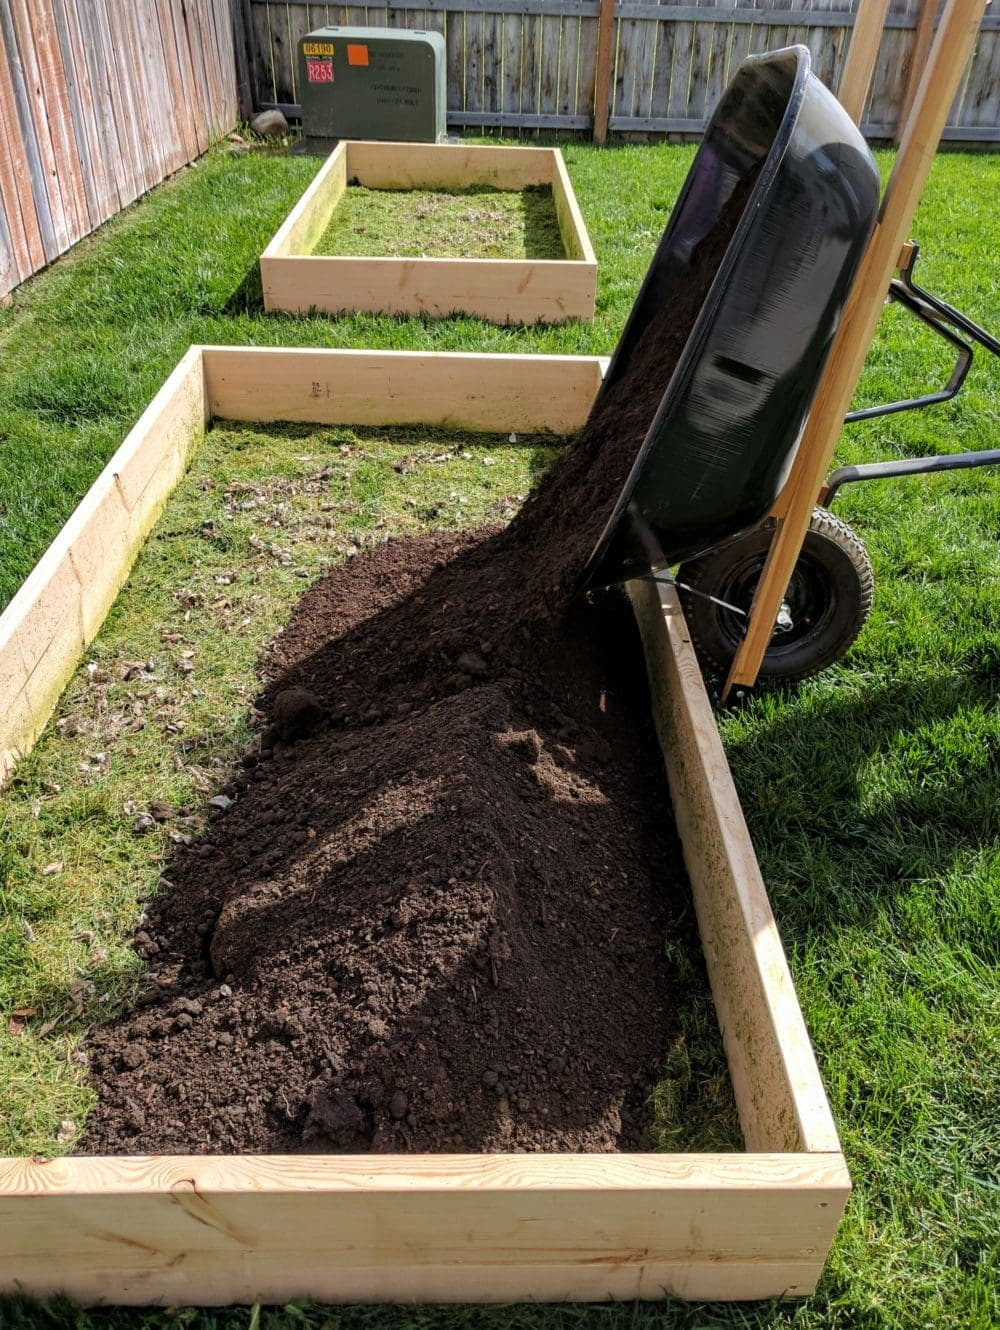 A wheel barrow dumping soil into a raised garden bed